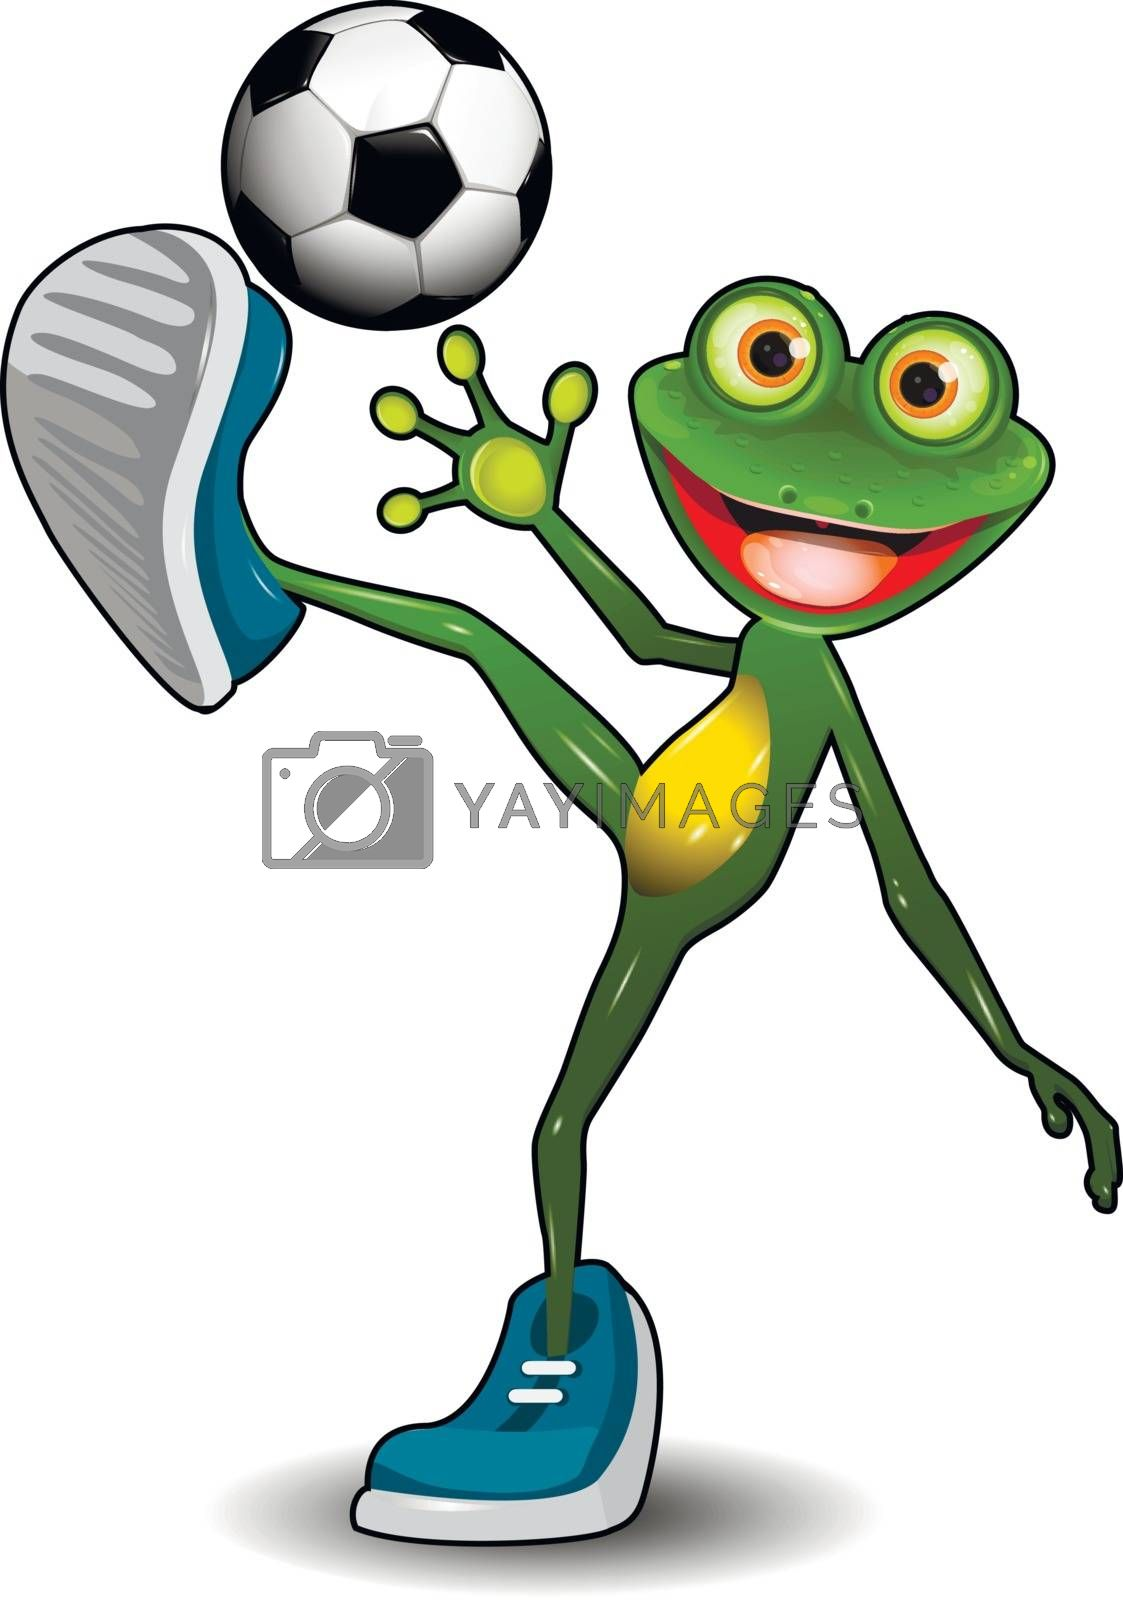 Frog with a Soccer Ball by brux